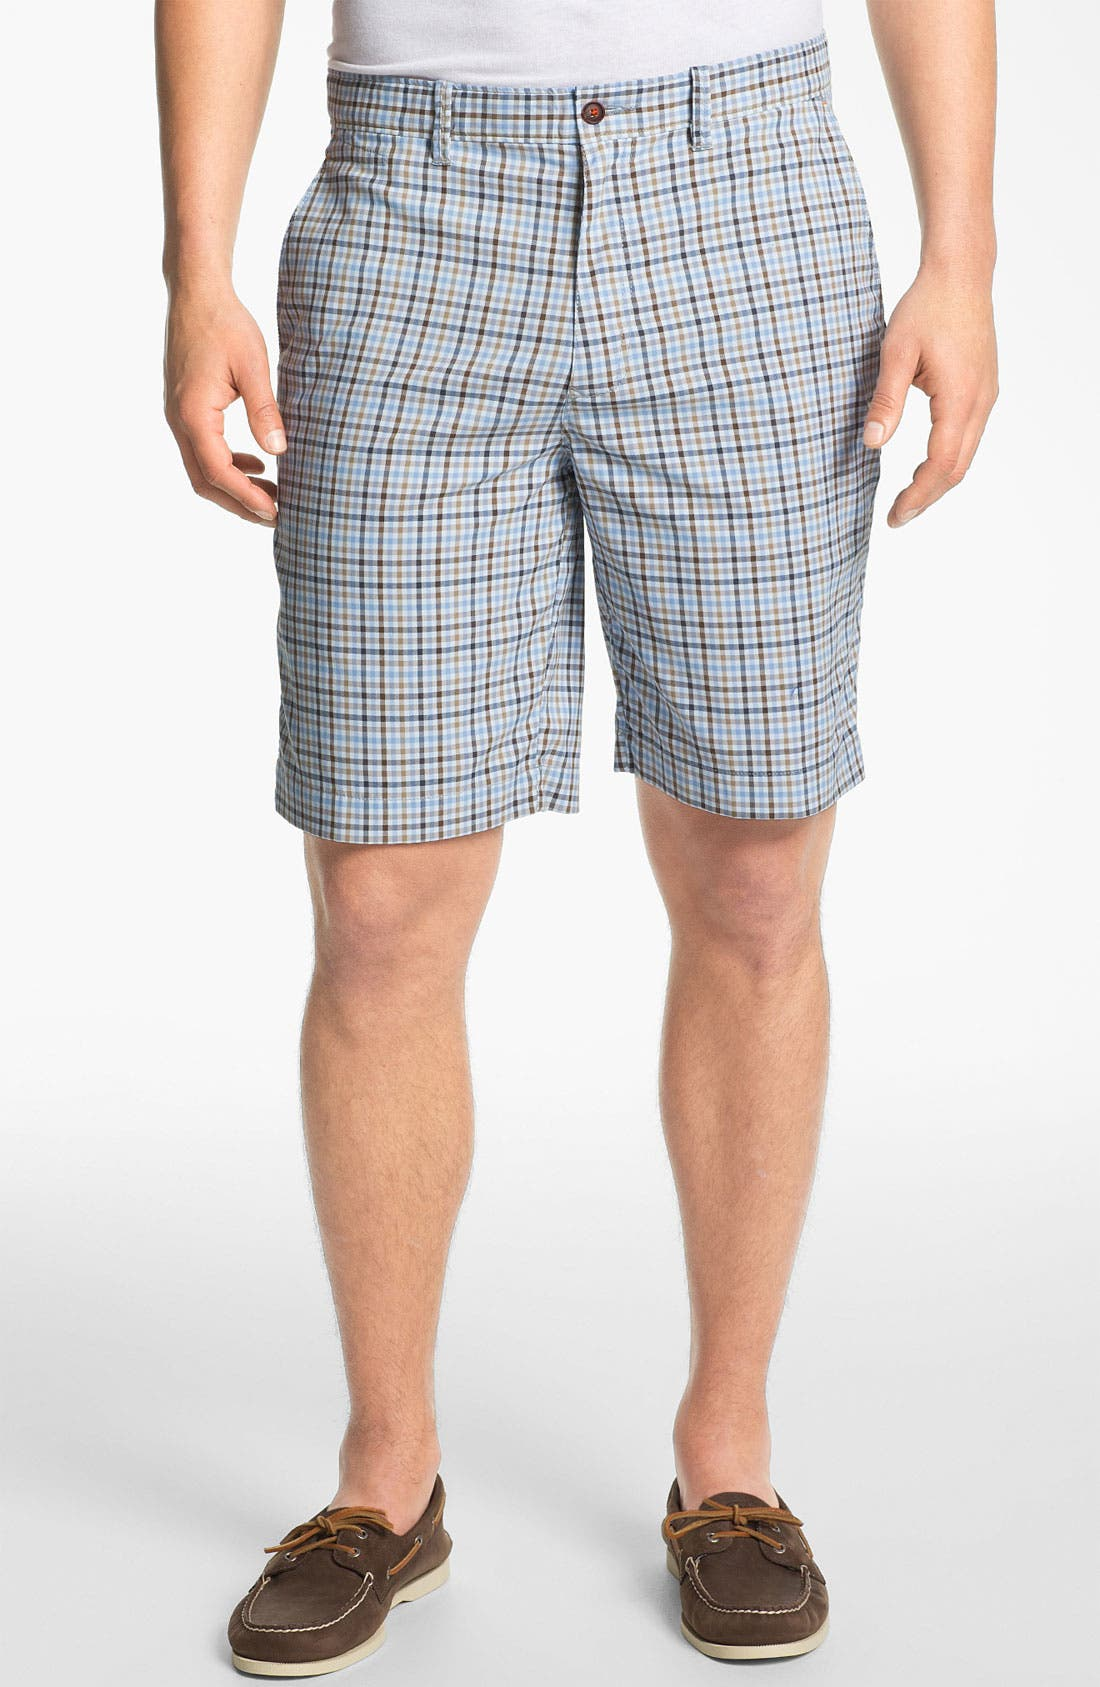 Alternate Image 1 Selected - Tommy Bahama 'Golf Shores' Shorts